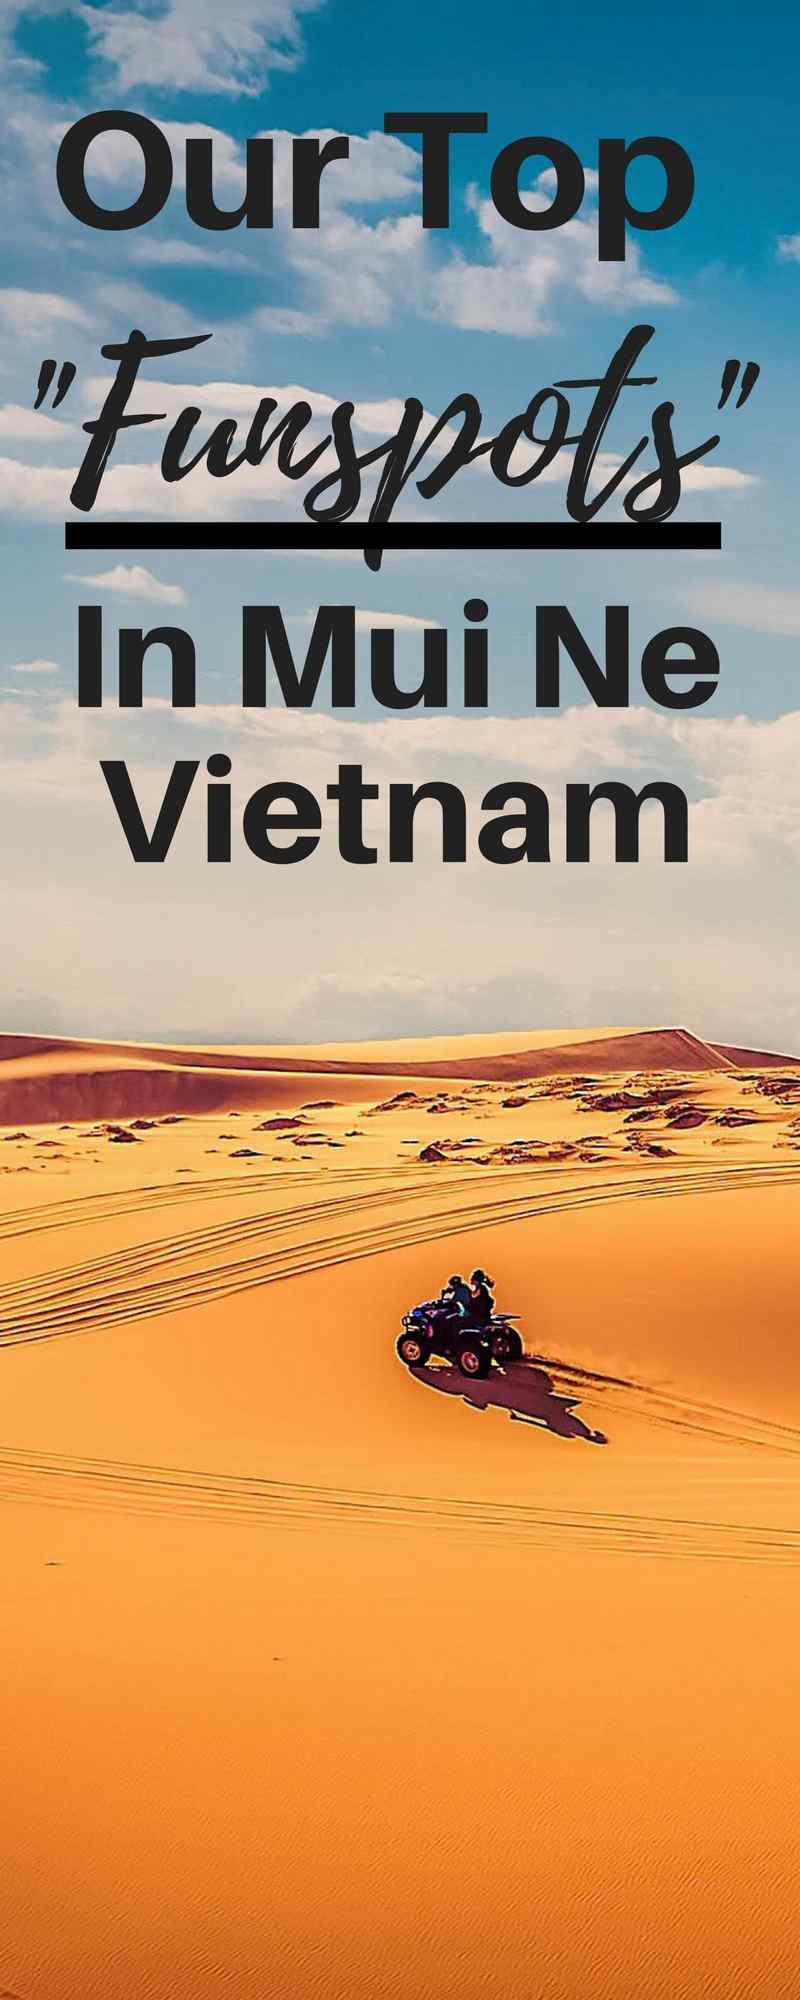 Our Top Pick Mui Ne – Relaxing in Vietnam   Mui Ne   Vietnam   SE Asia   SE Asia Packing List   SE Asia Itinerary   SE Asia Packing List   SE Asia Travel   SE Asia Outfits   Travel   ARoadtoTravel.com